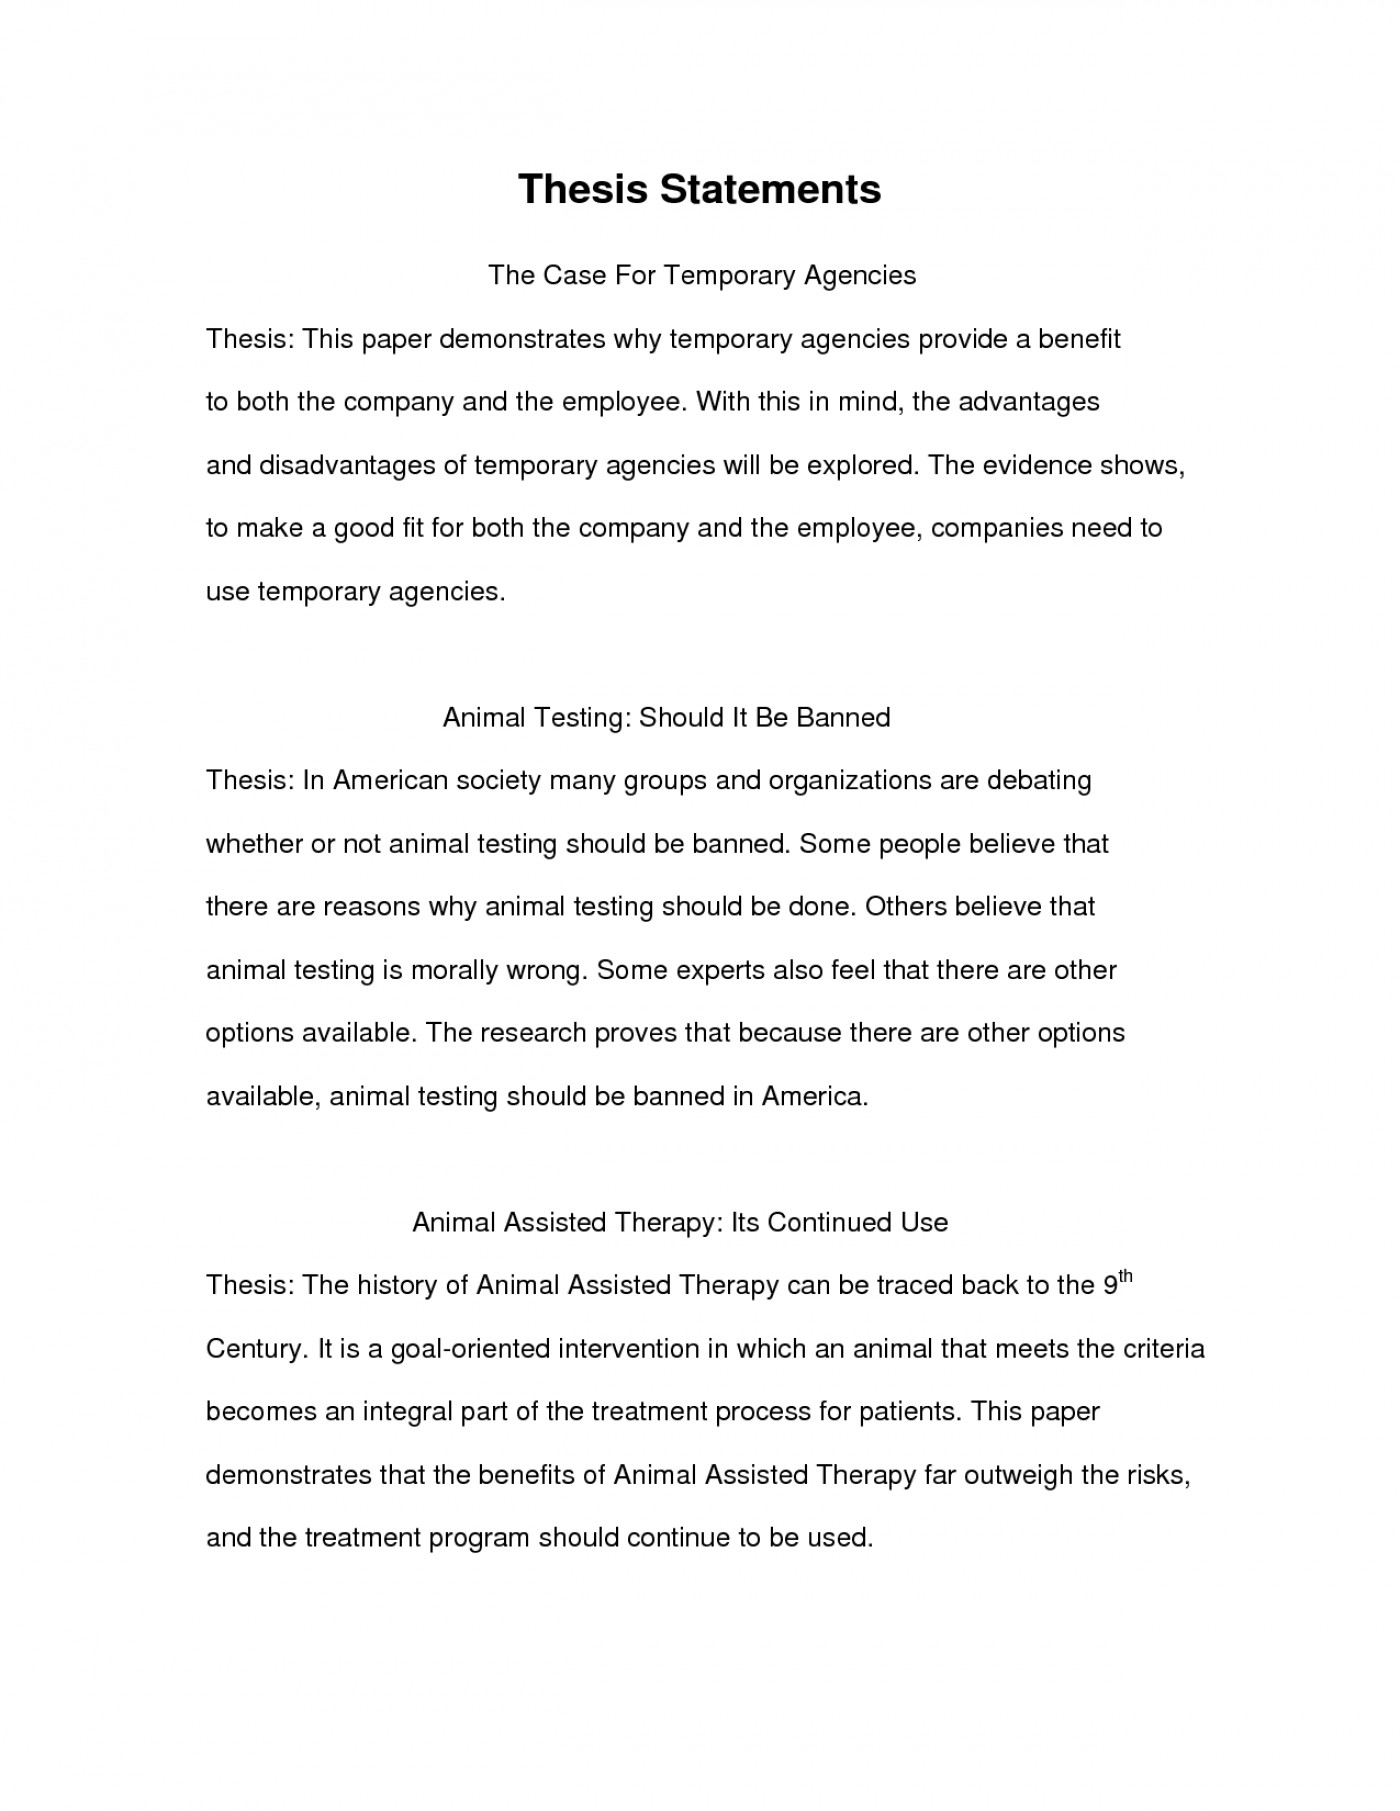 essay term paper thesis statement examples how to write a strong  thesis statement for research paper on abortion breast cancer thesis  statement for research paper on abortion